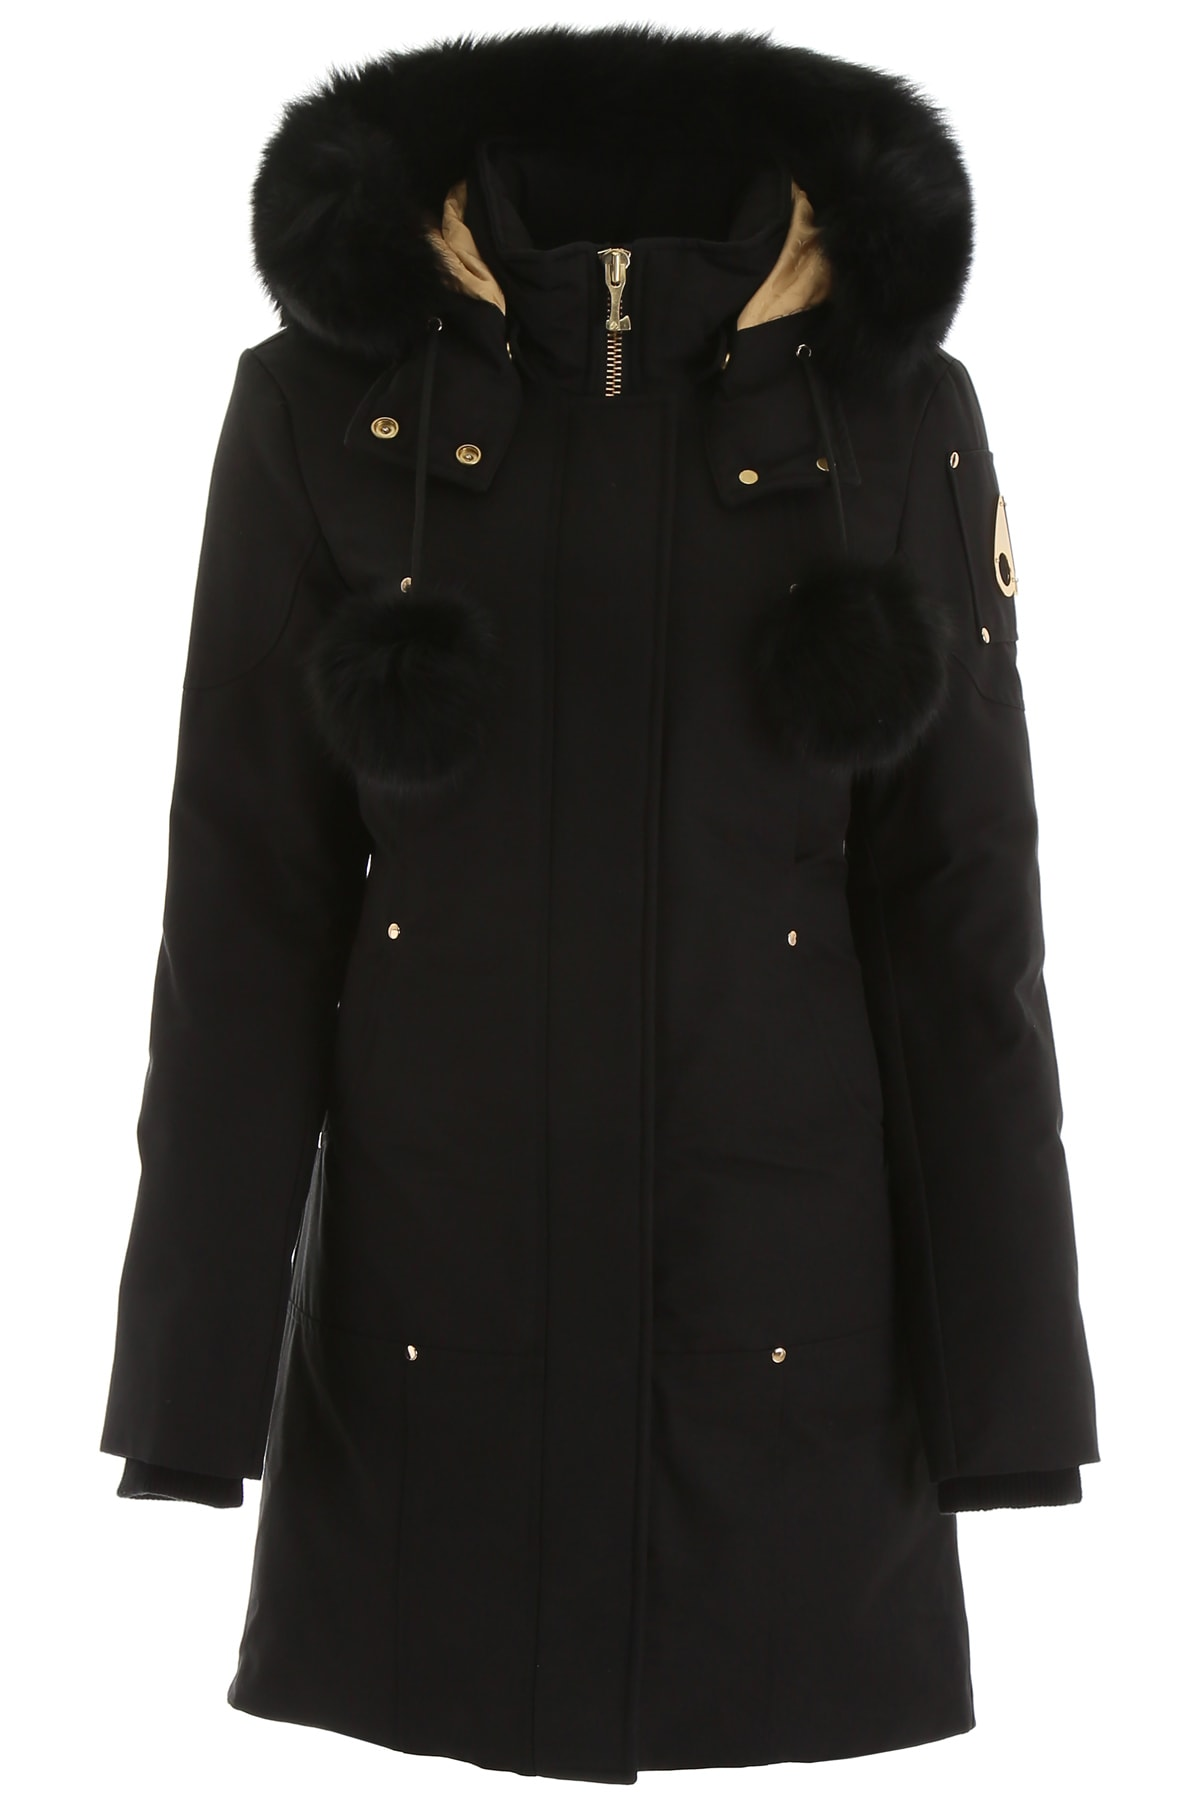 Moose Knuckles Coat